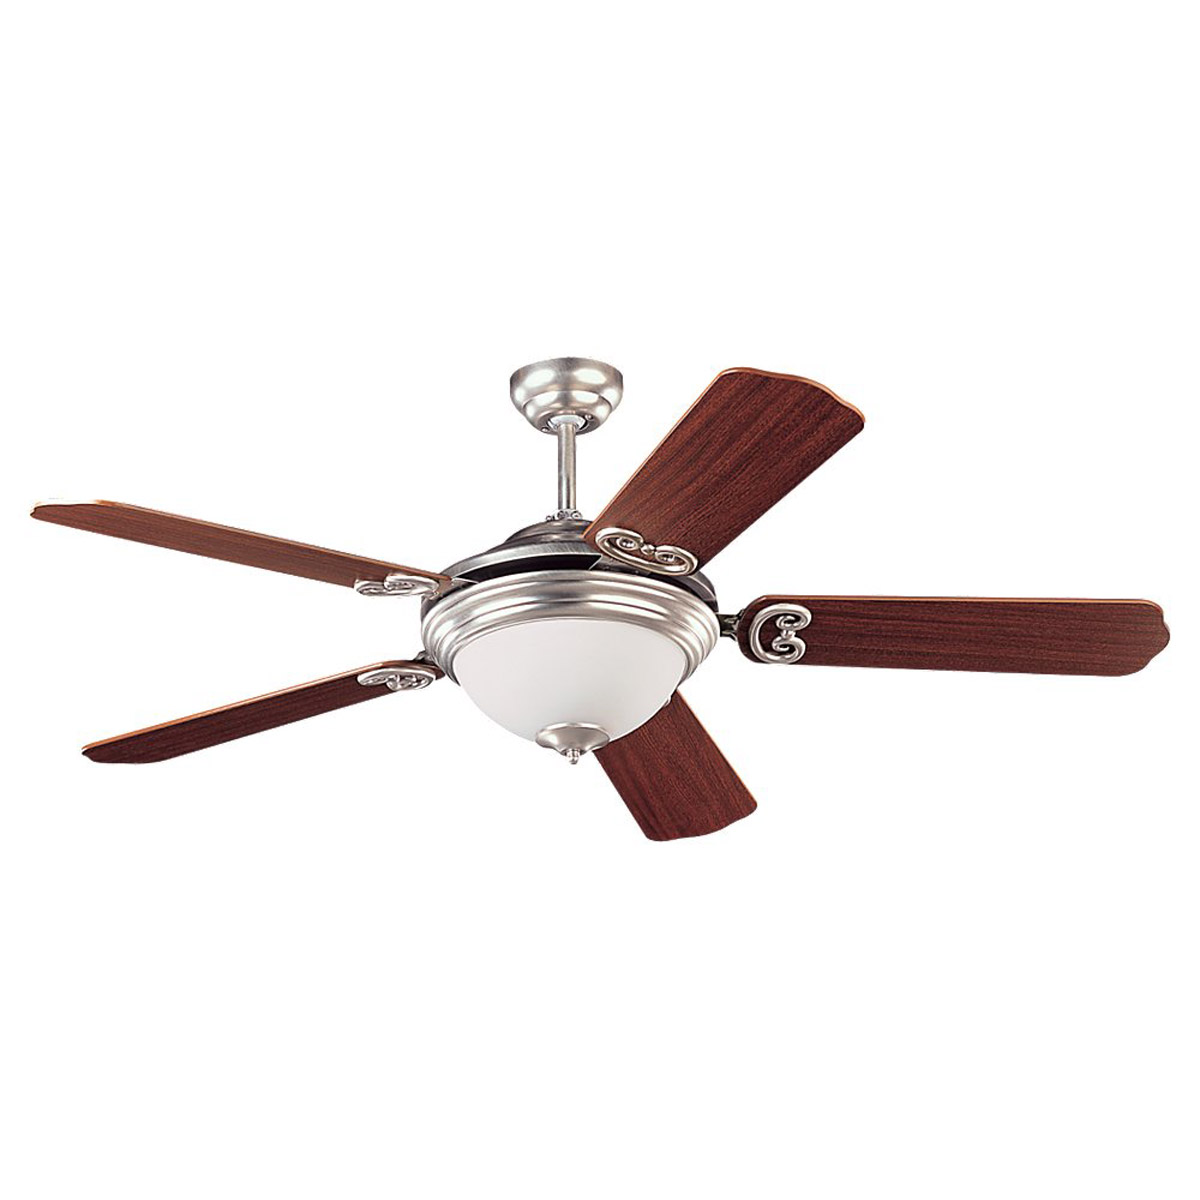 Sea Gull Lighting Park Avenue Elite 3 Light Ceiling Fan in Brushed Nickel 15190BLE-962